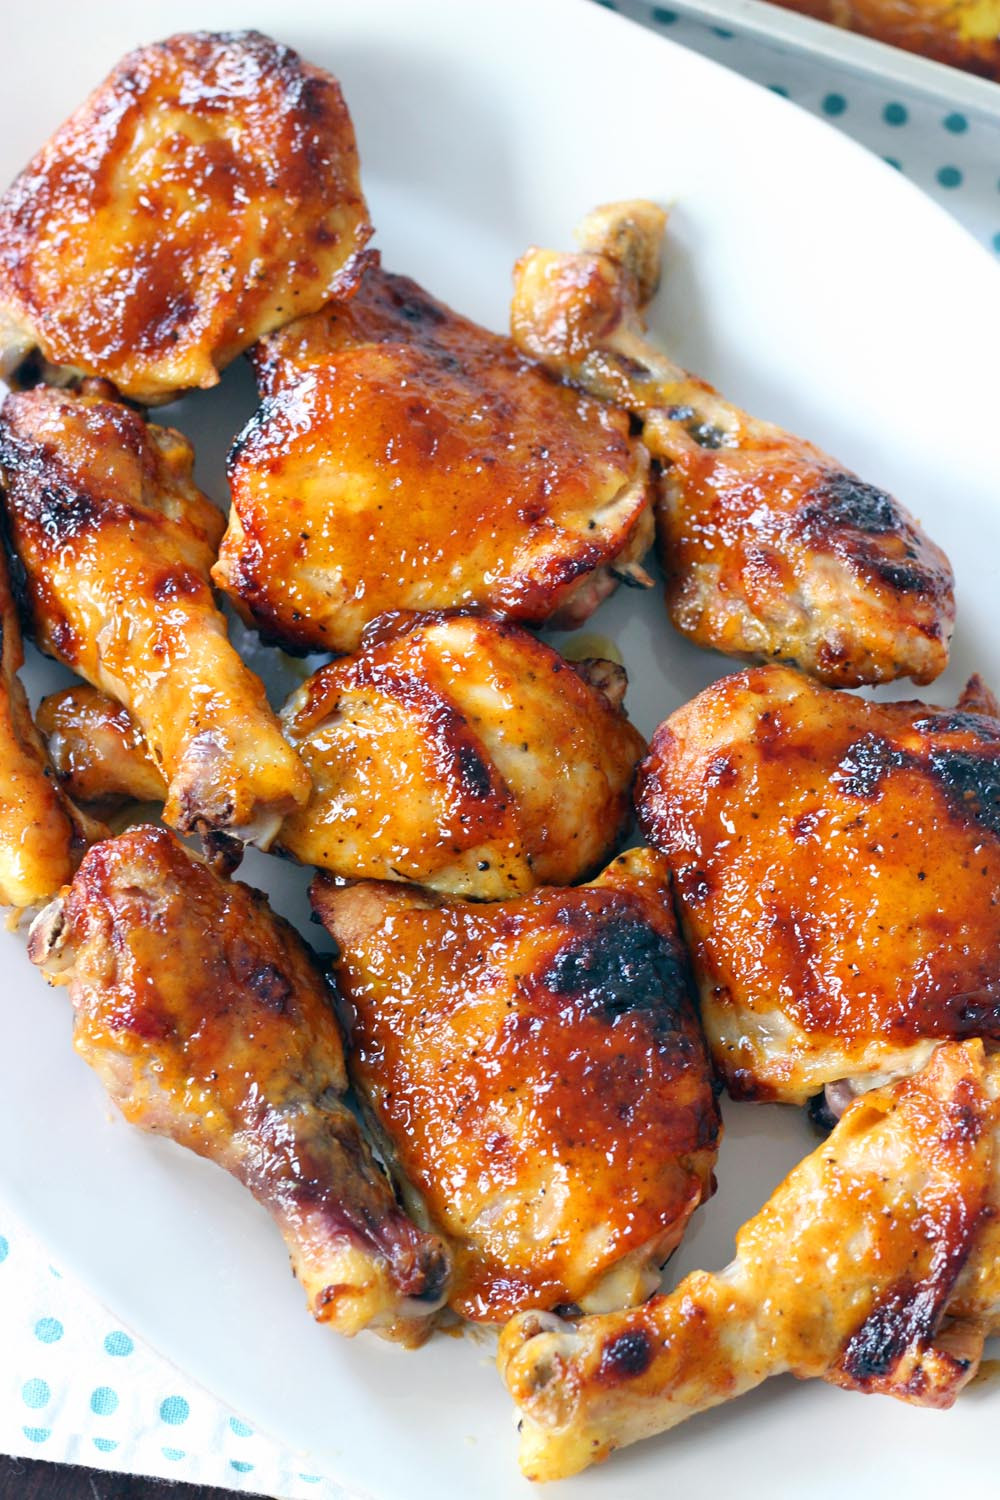 Bbq Baked Chicken  Two Ingre nt Crispy Oven Baked BBQ Chicken